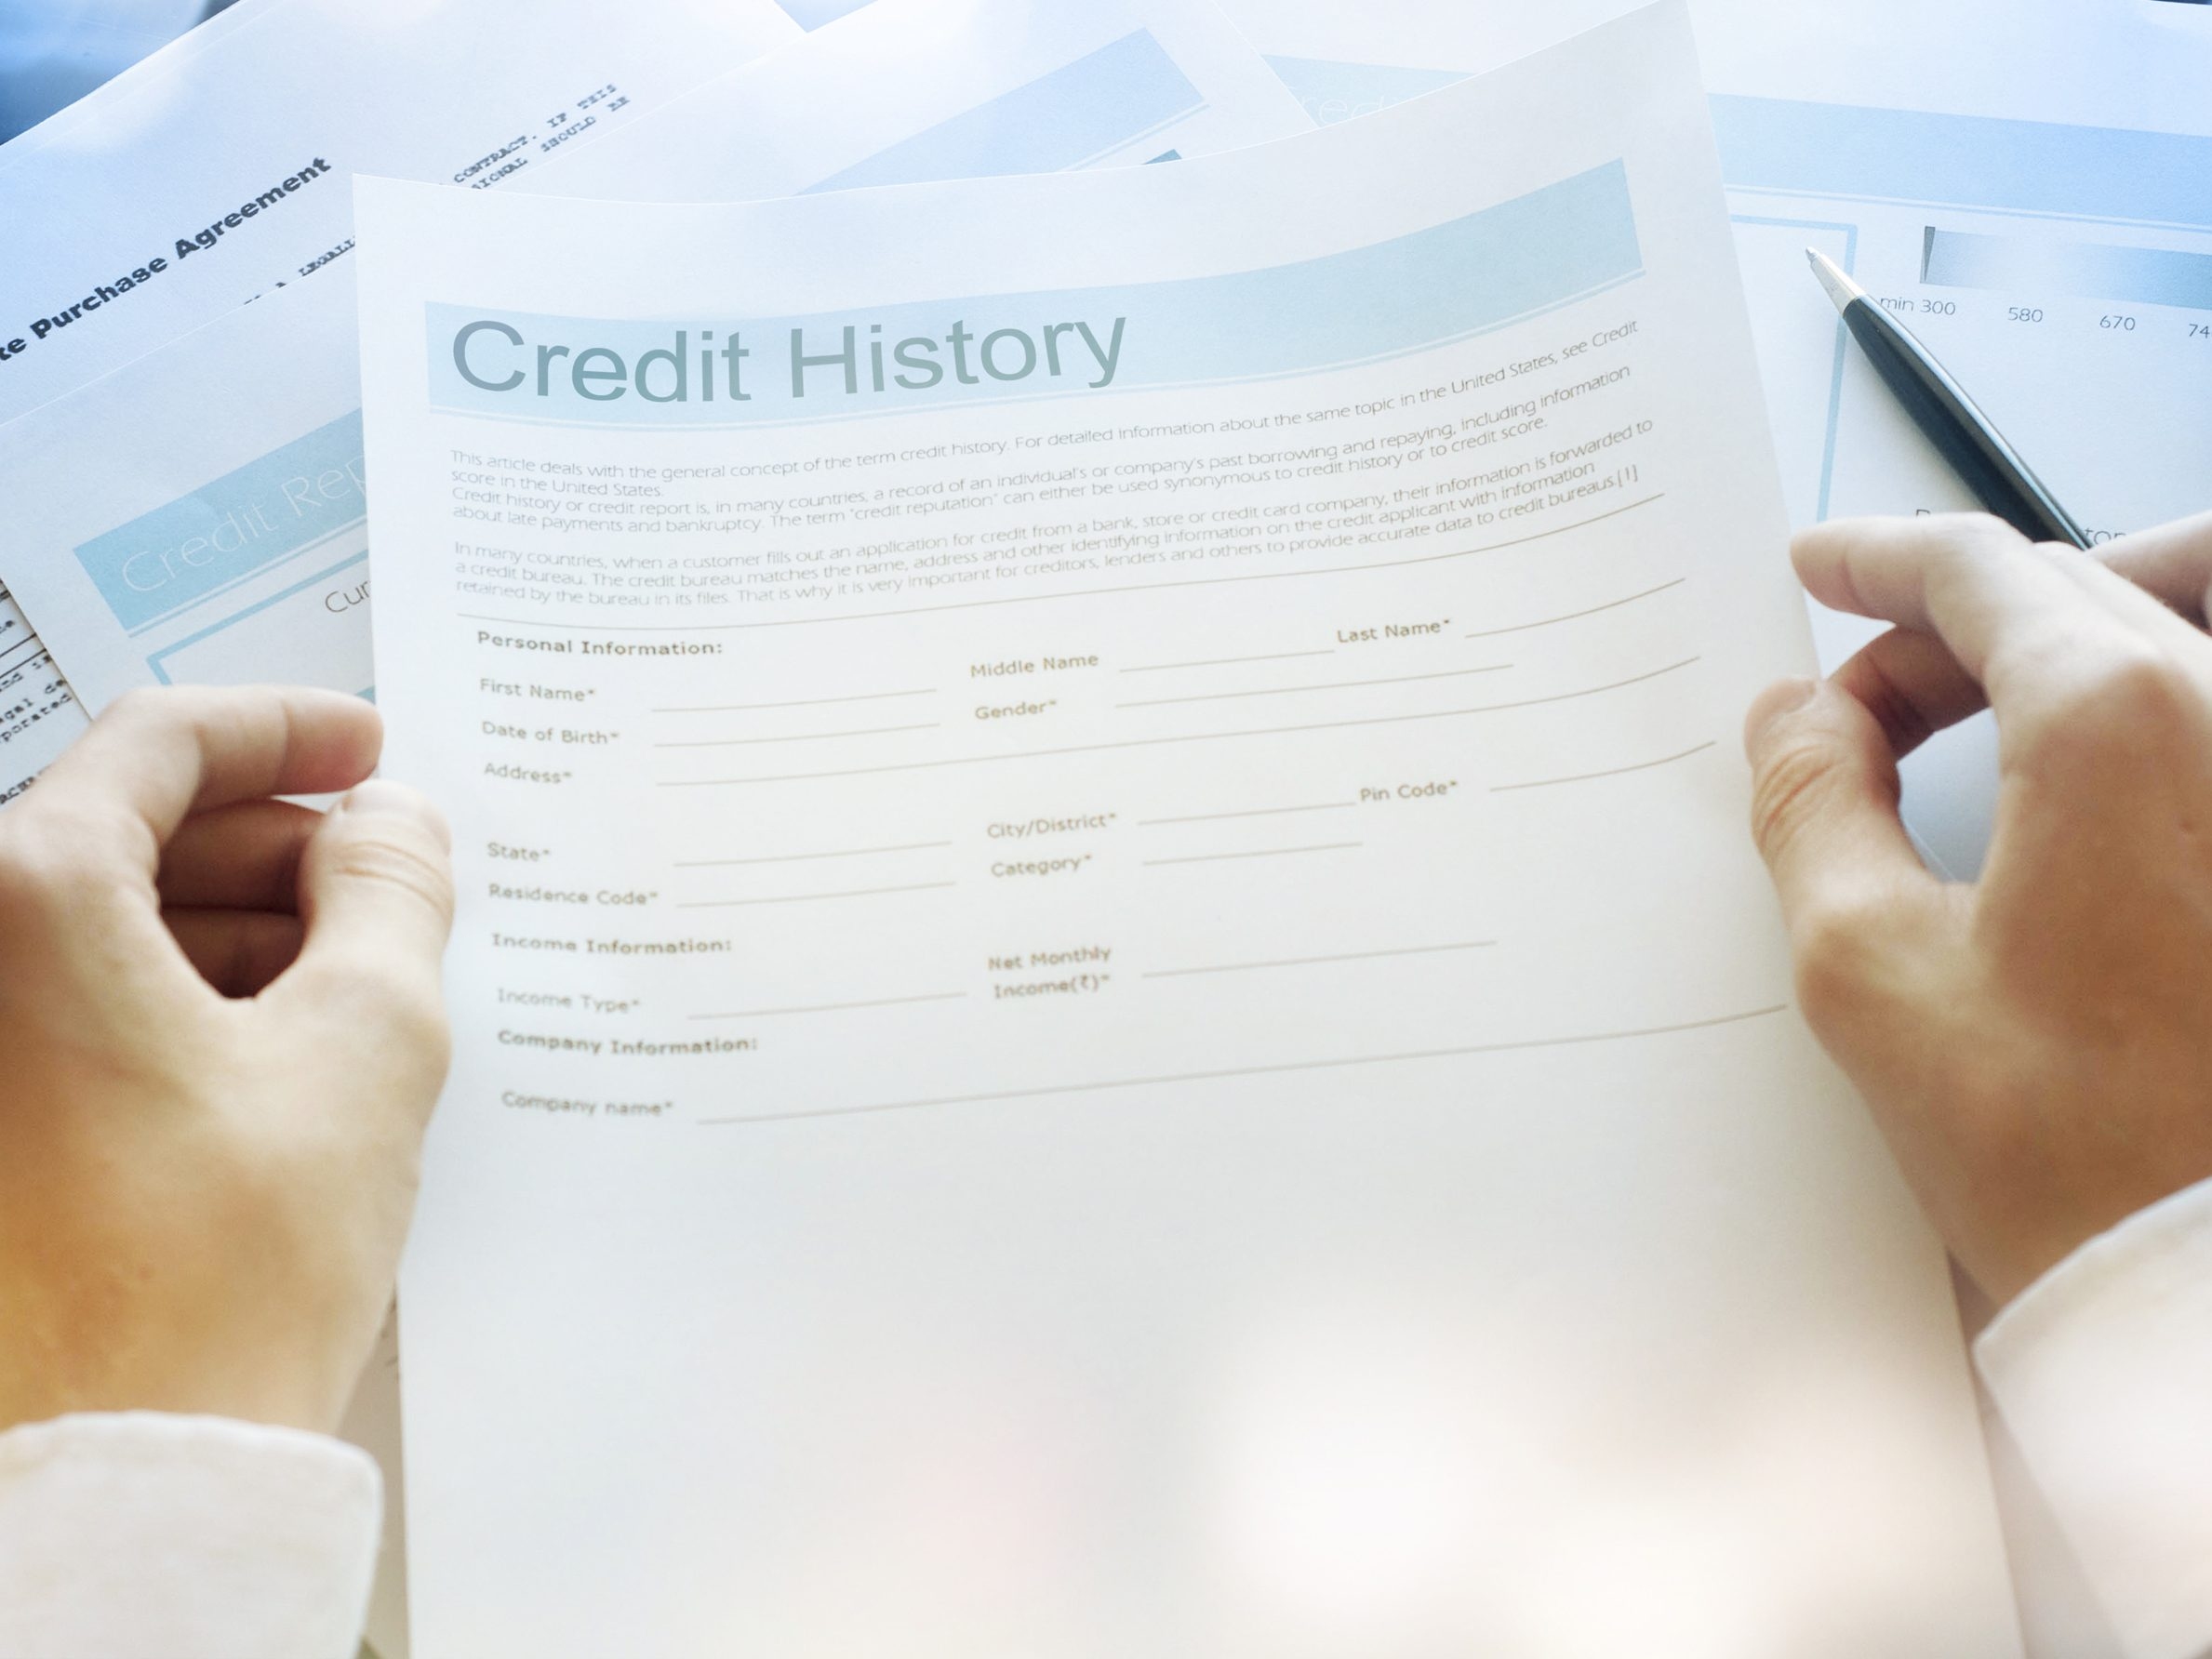 2. Know Your Credit Score